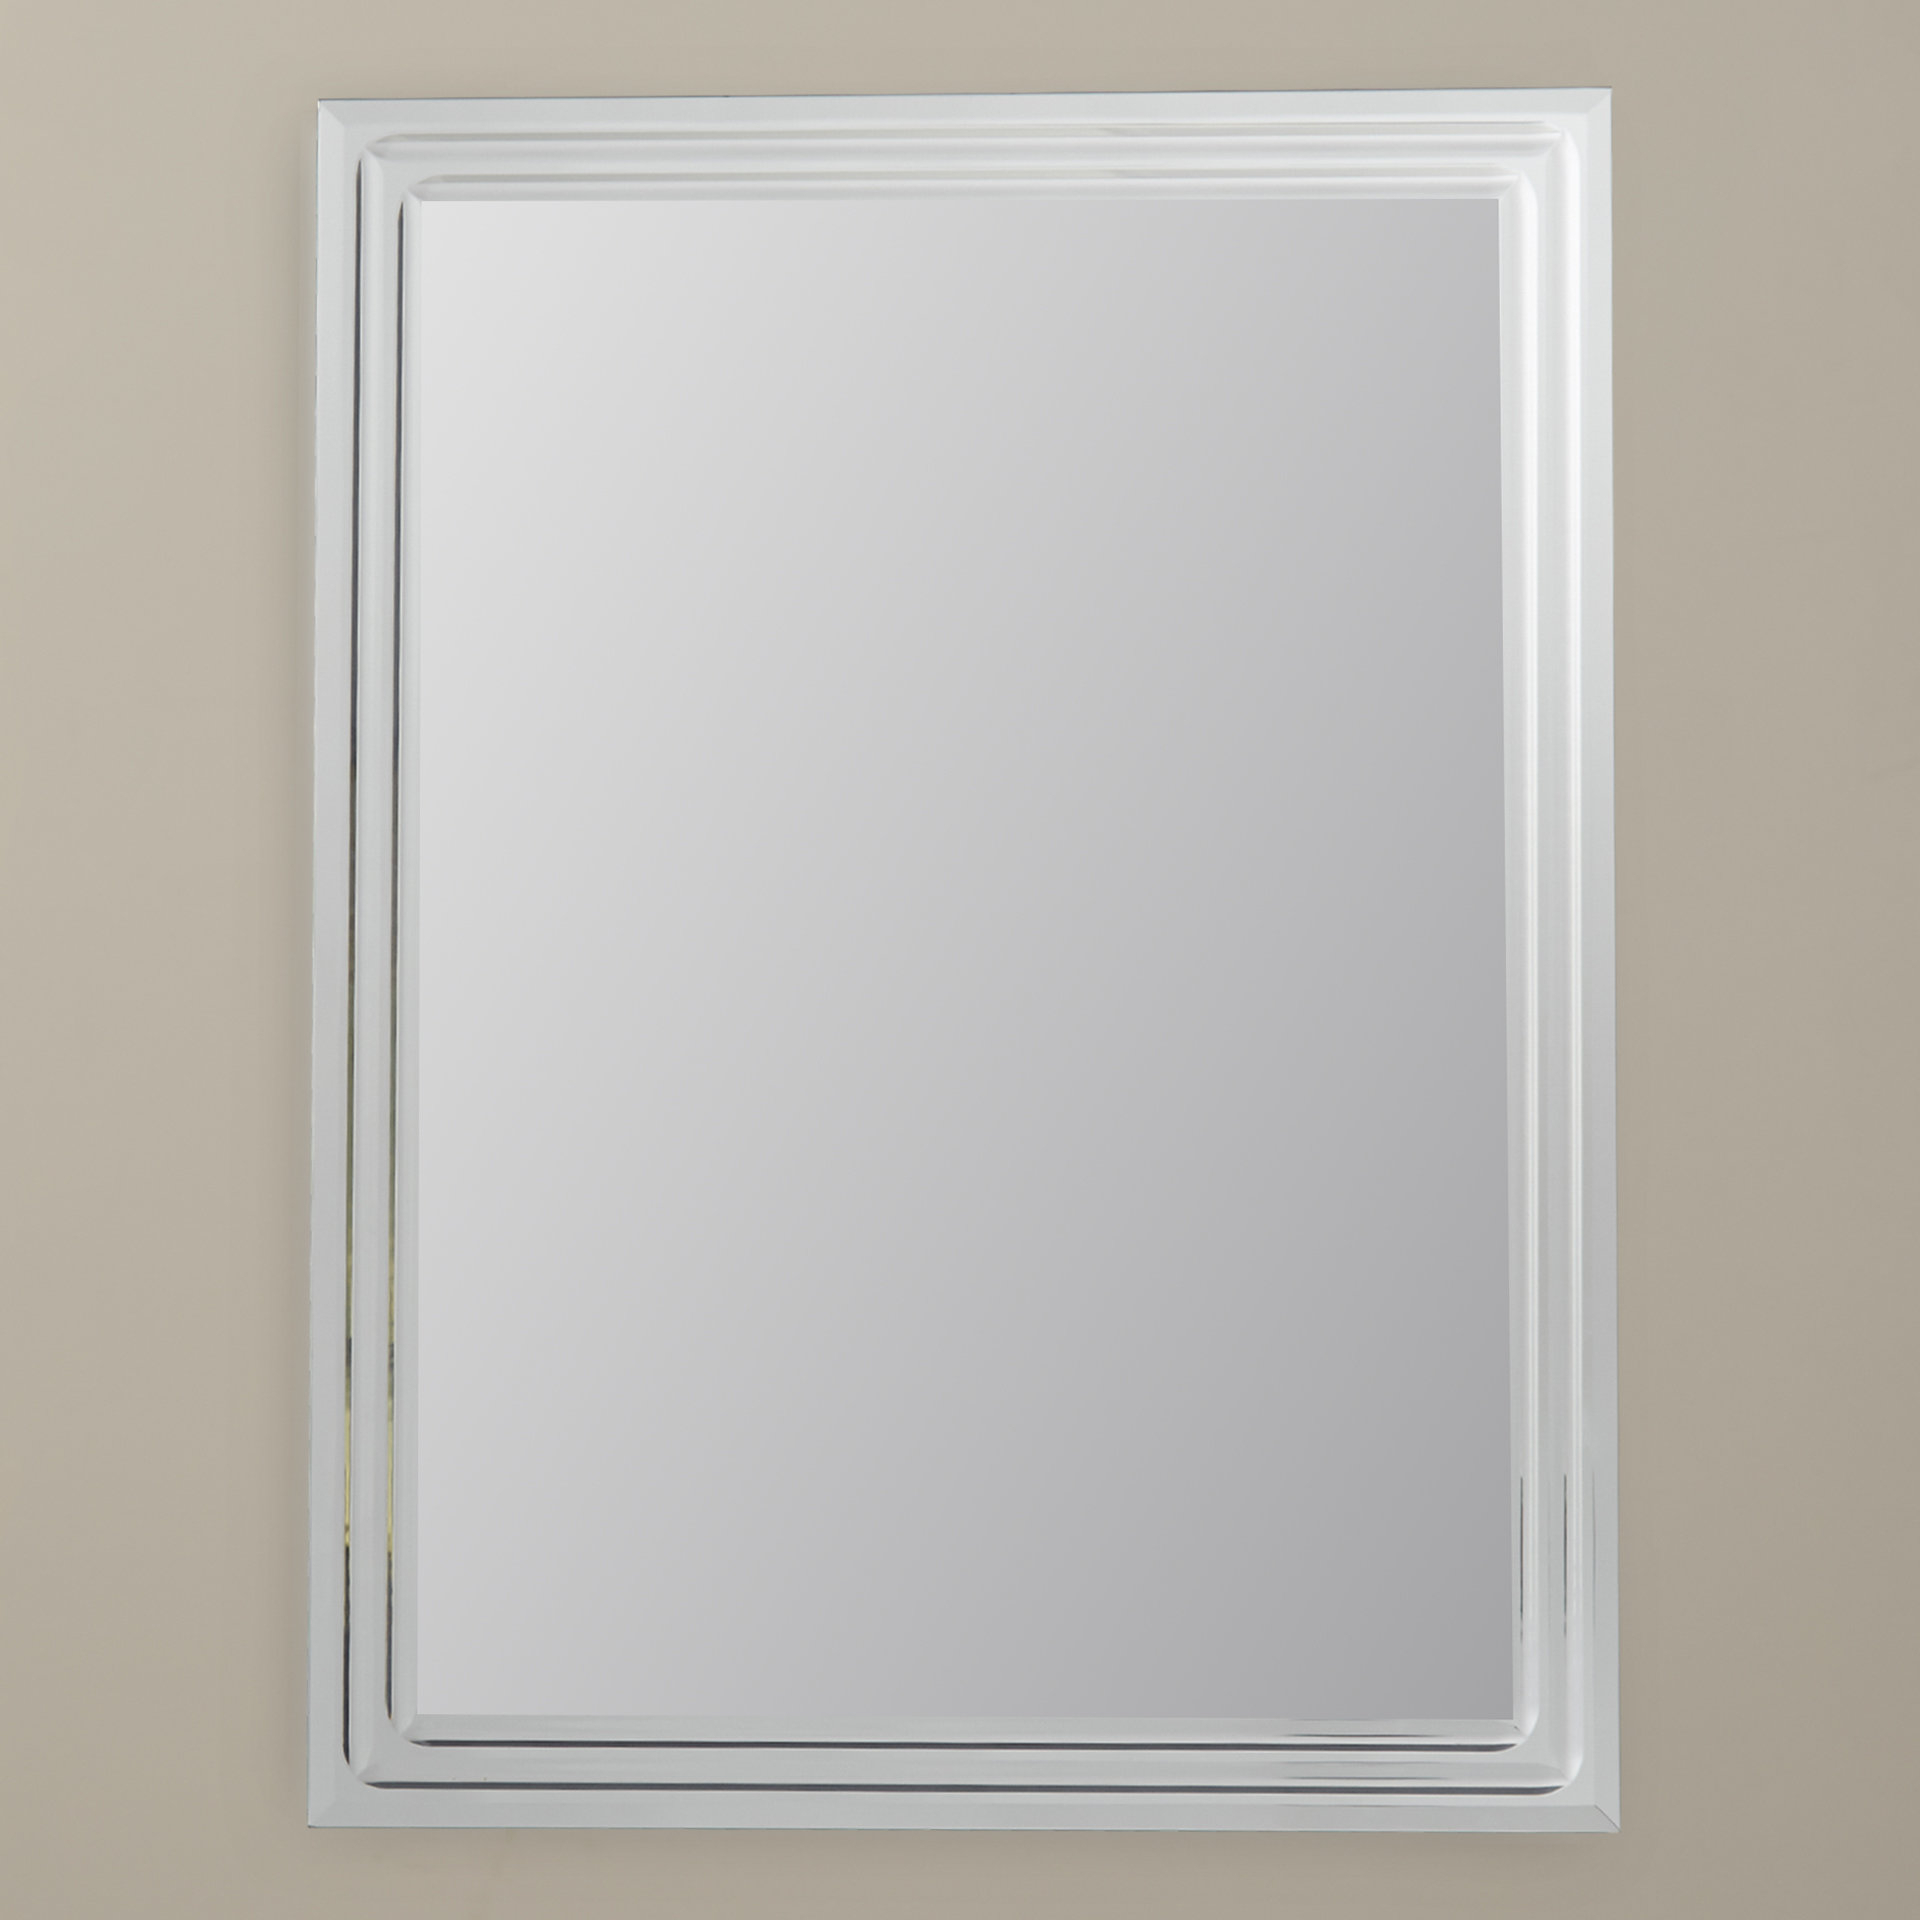 Fashionable Frameless Beveled Wall Mirrors Regarding Tetbury Frameless Tri Bevel Wall Mirror (View 15 of 20)